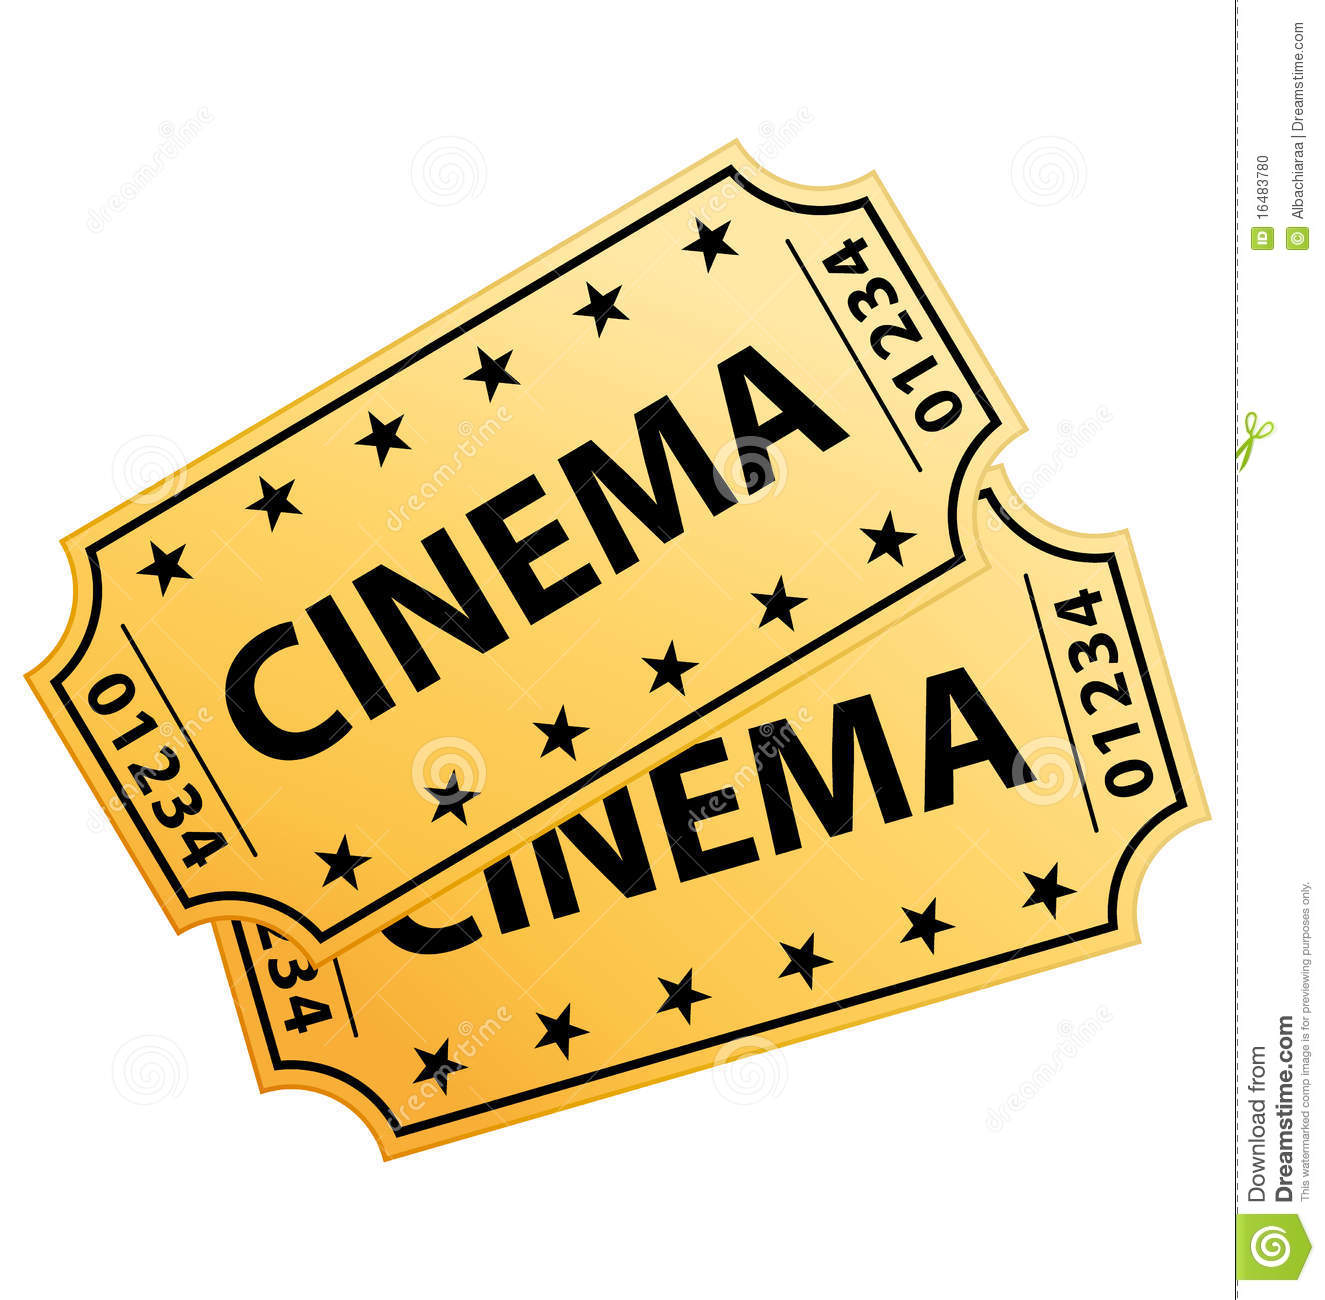 Cinema Movie Tickets Clipart.